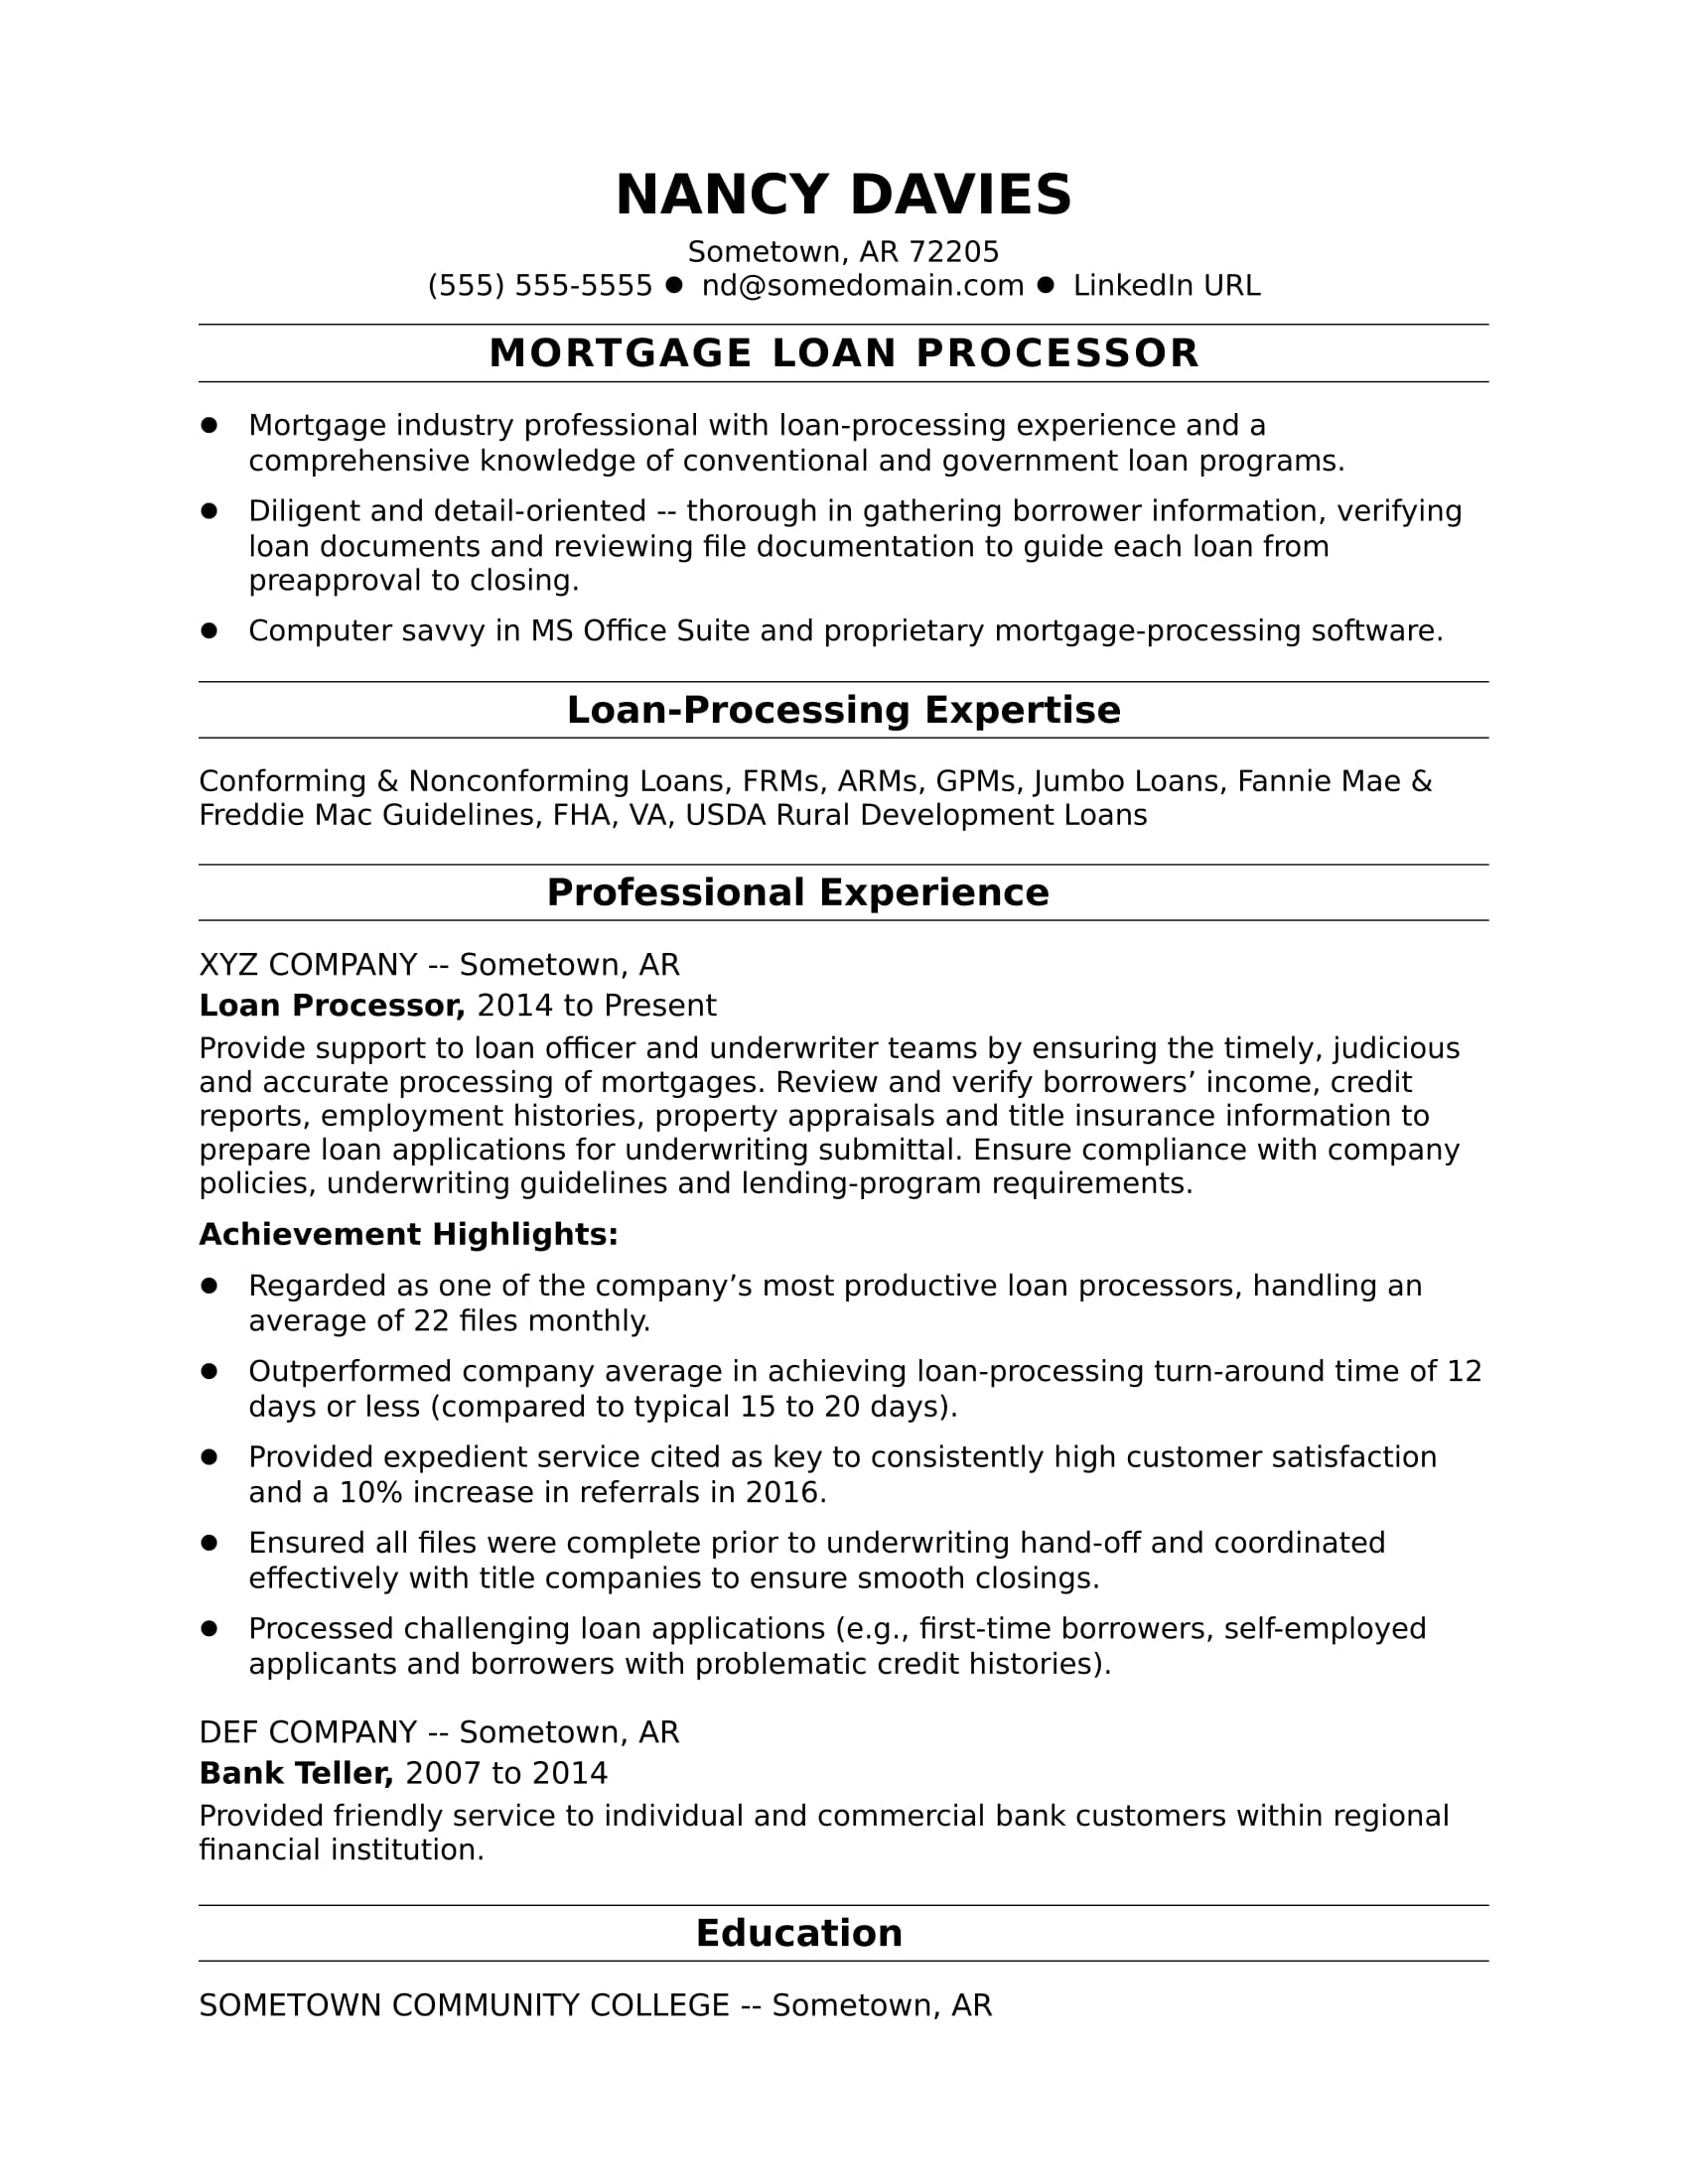 sample resume for a mortgage loan processor - Loan Processor Resume Sample